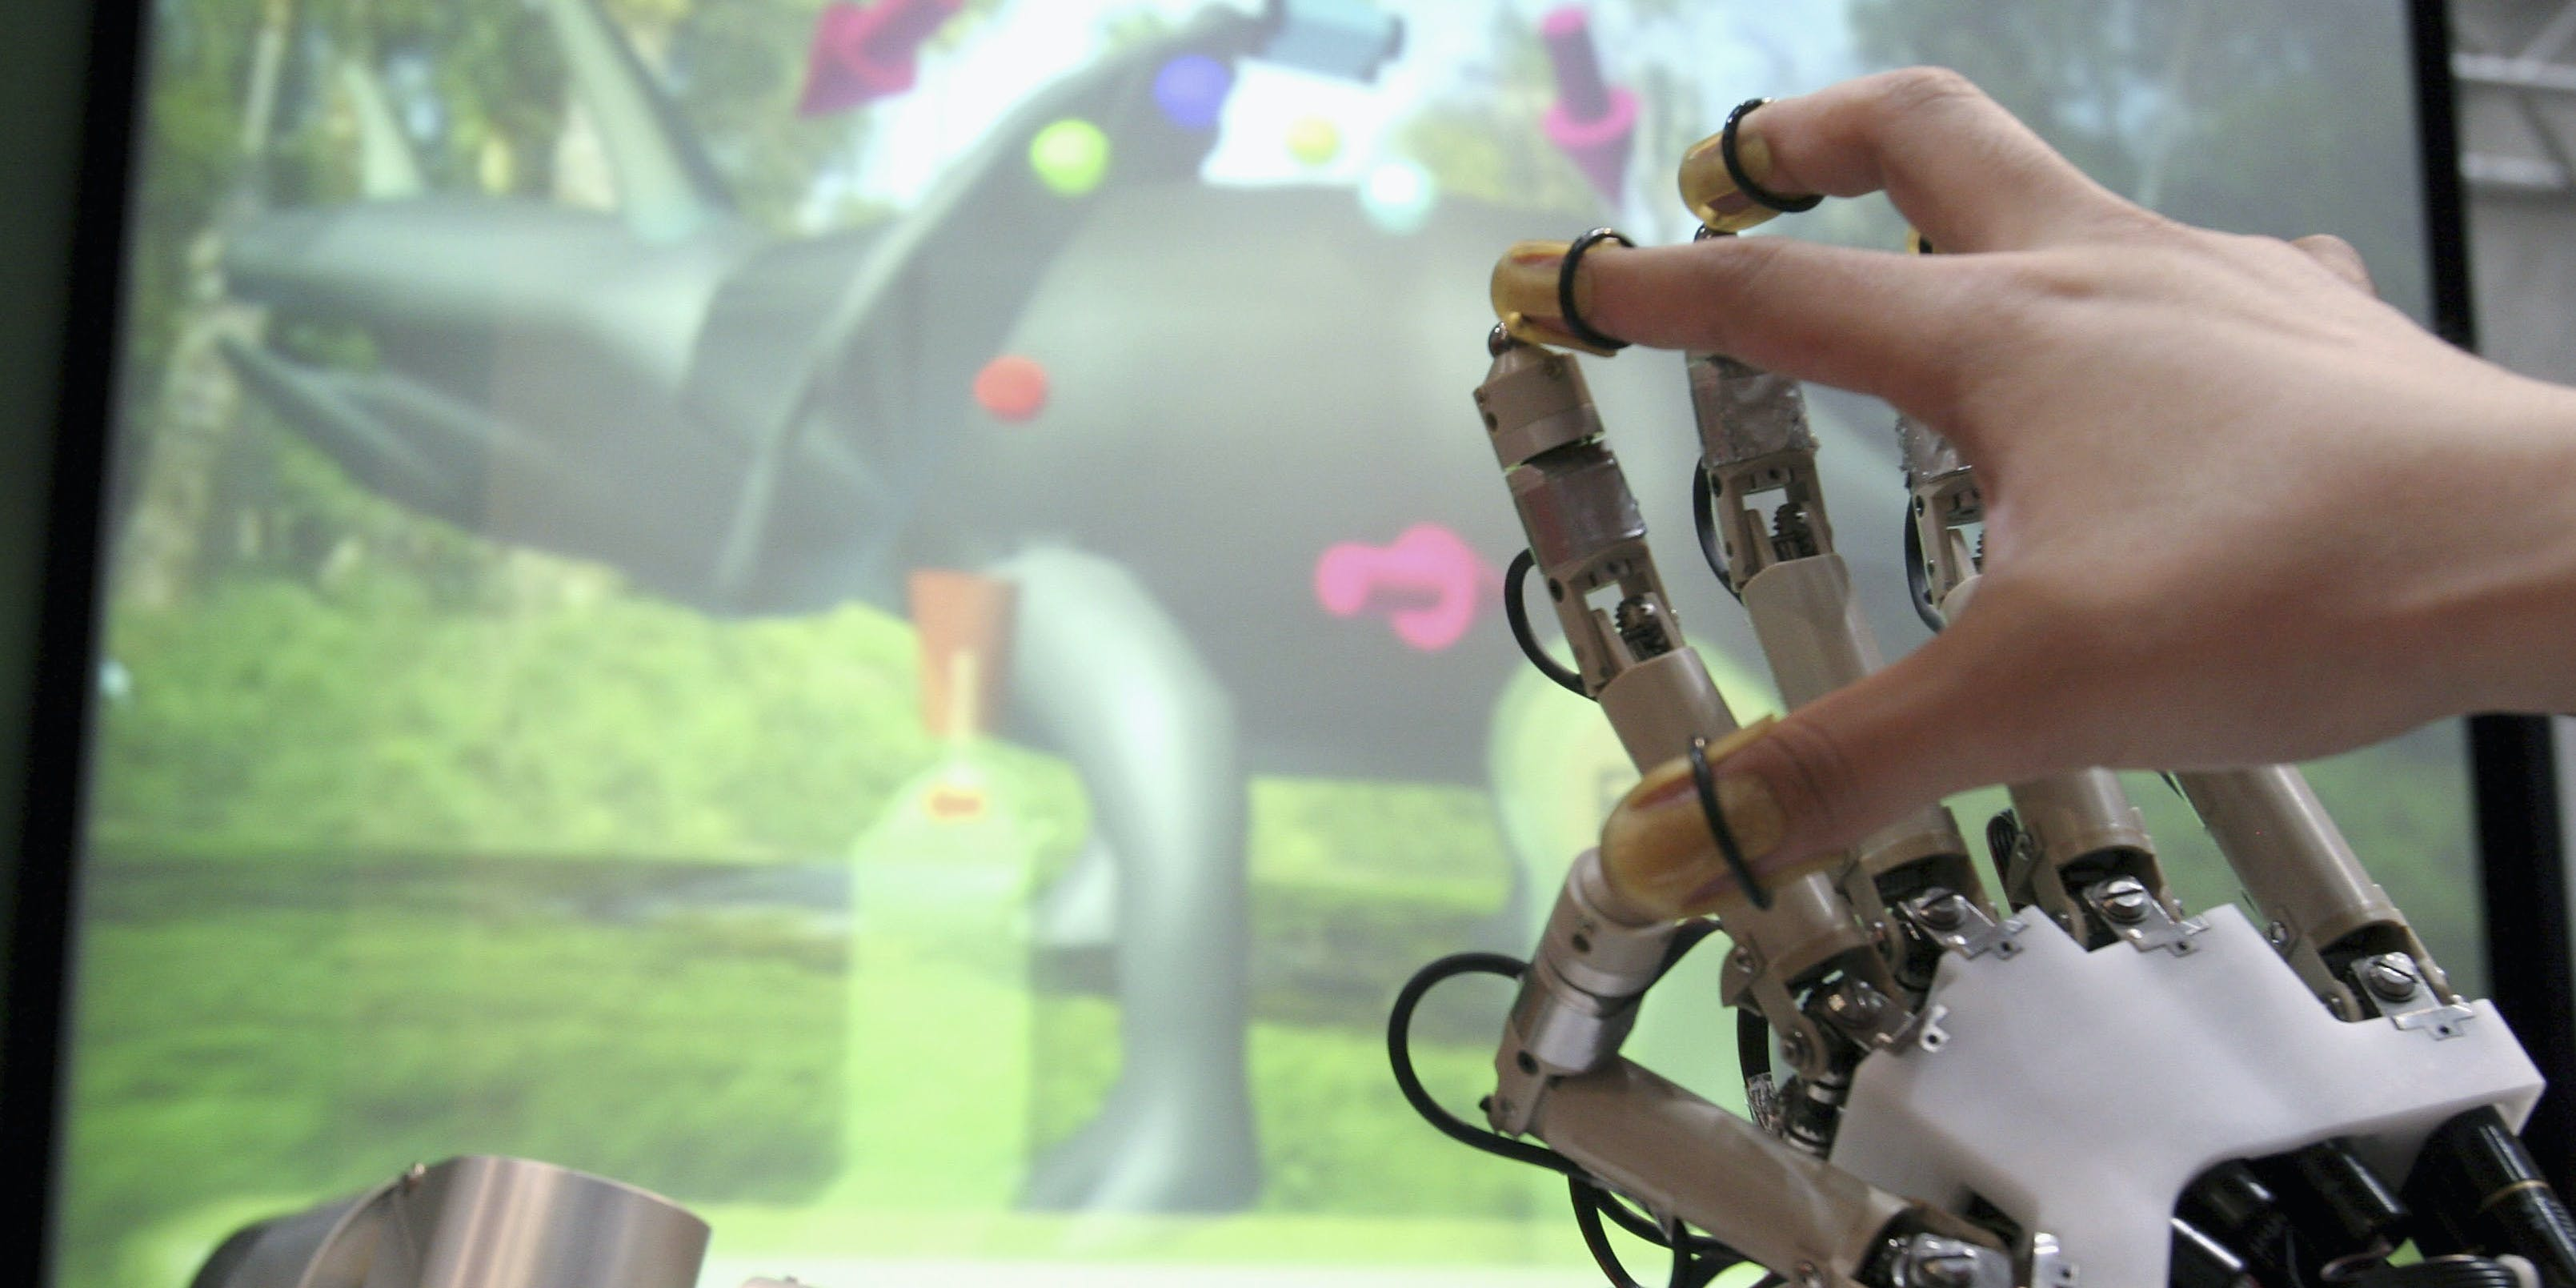 The future of virtual reality depends on advancements in haptic touch.